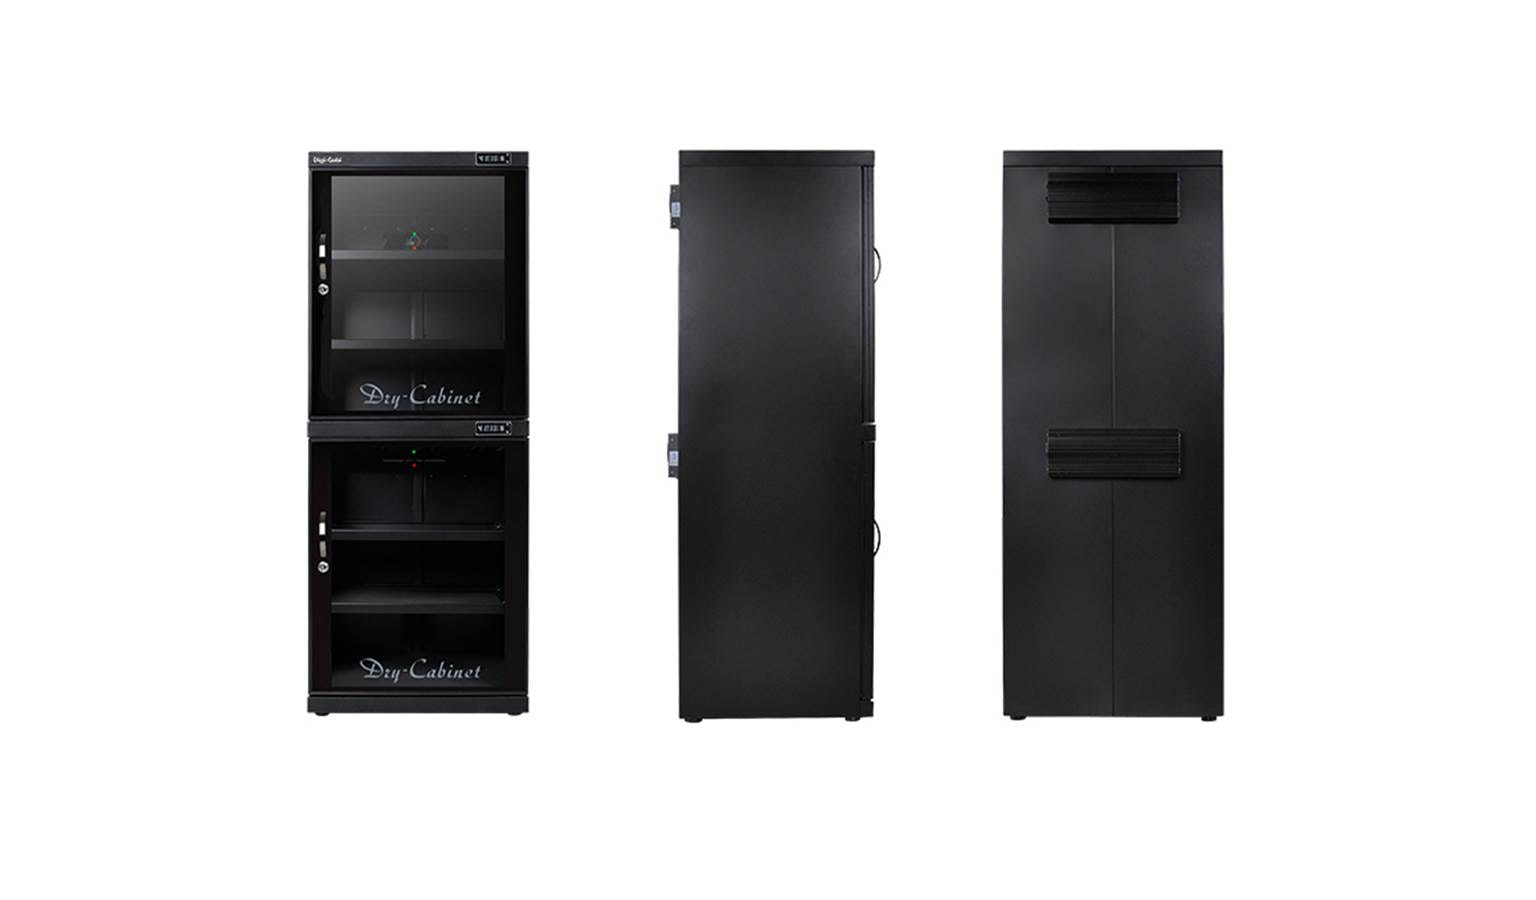 Digi-Cabi DHC-400 Dry Cabinet (Overview)